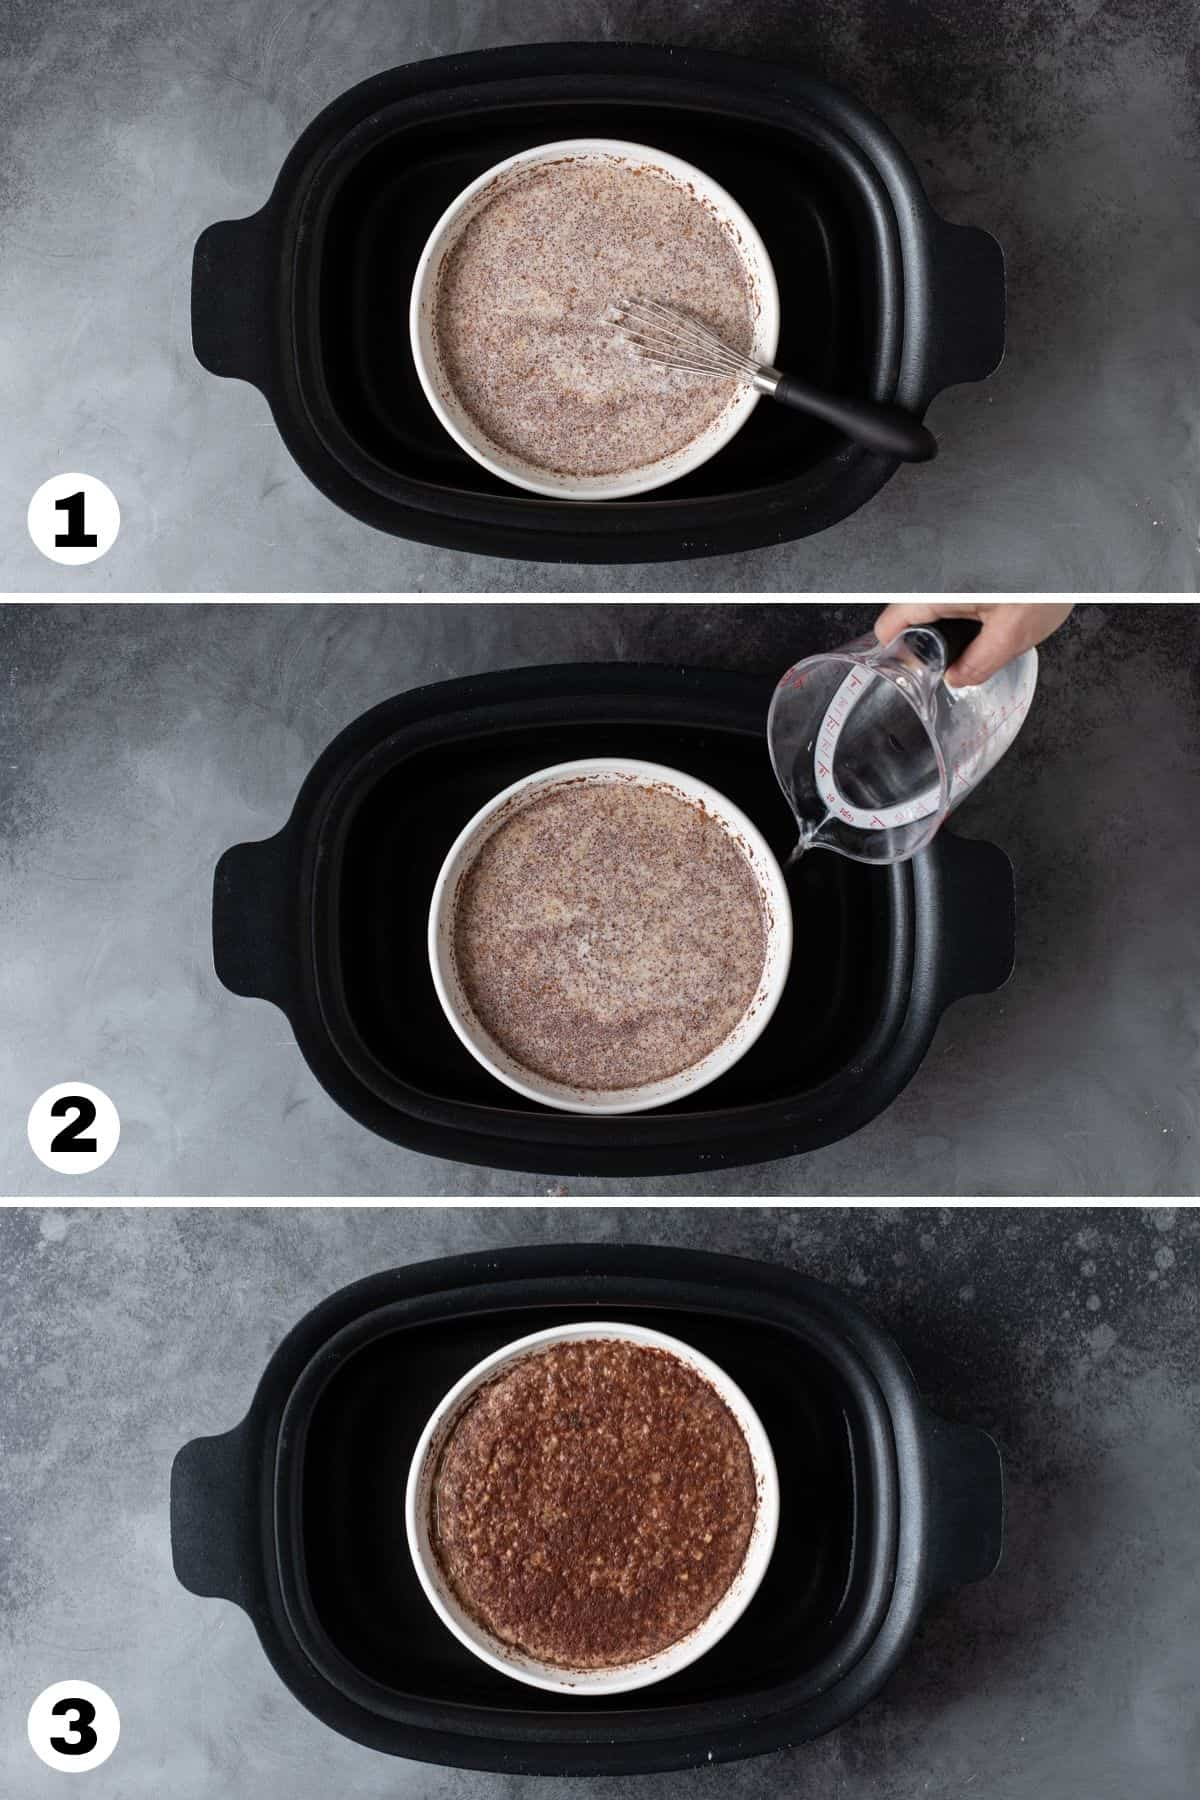 Step by step instructions for making oatmeal in slow cooker.